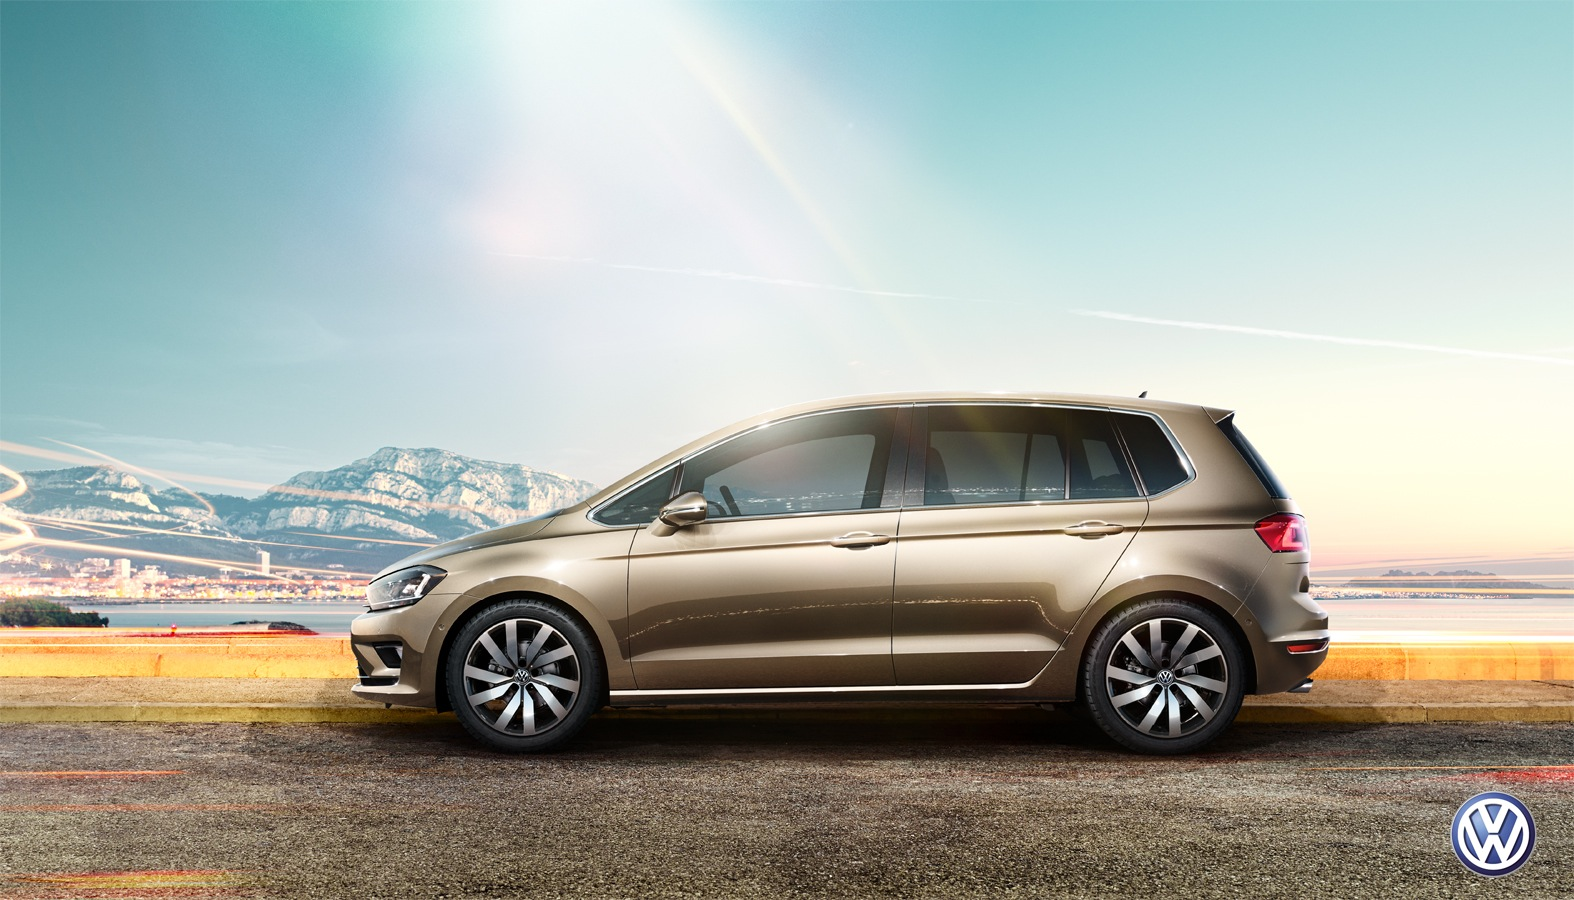 uwe duettmann shoots volkswagen golf sportsvan campaign. Black Bedroom Furniture Sets. Home Design Ideas